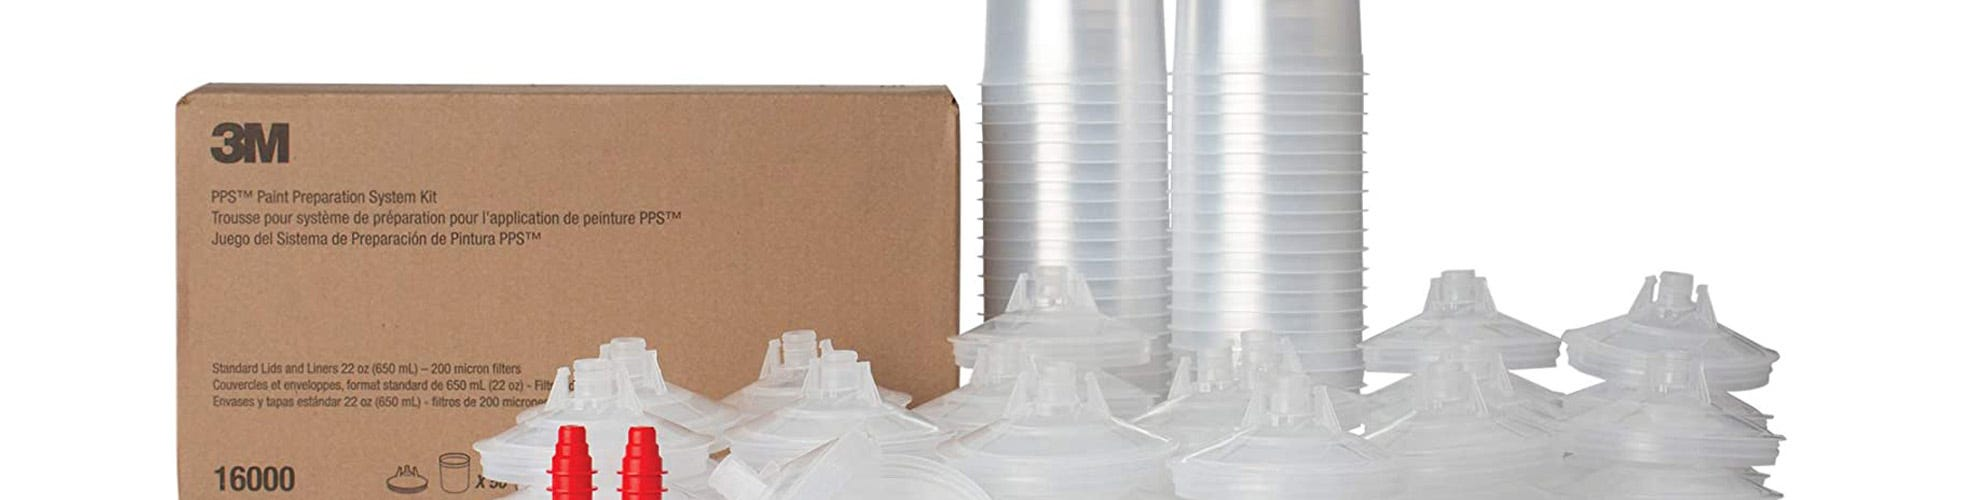 Disposable Cup Liner Systems